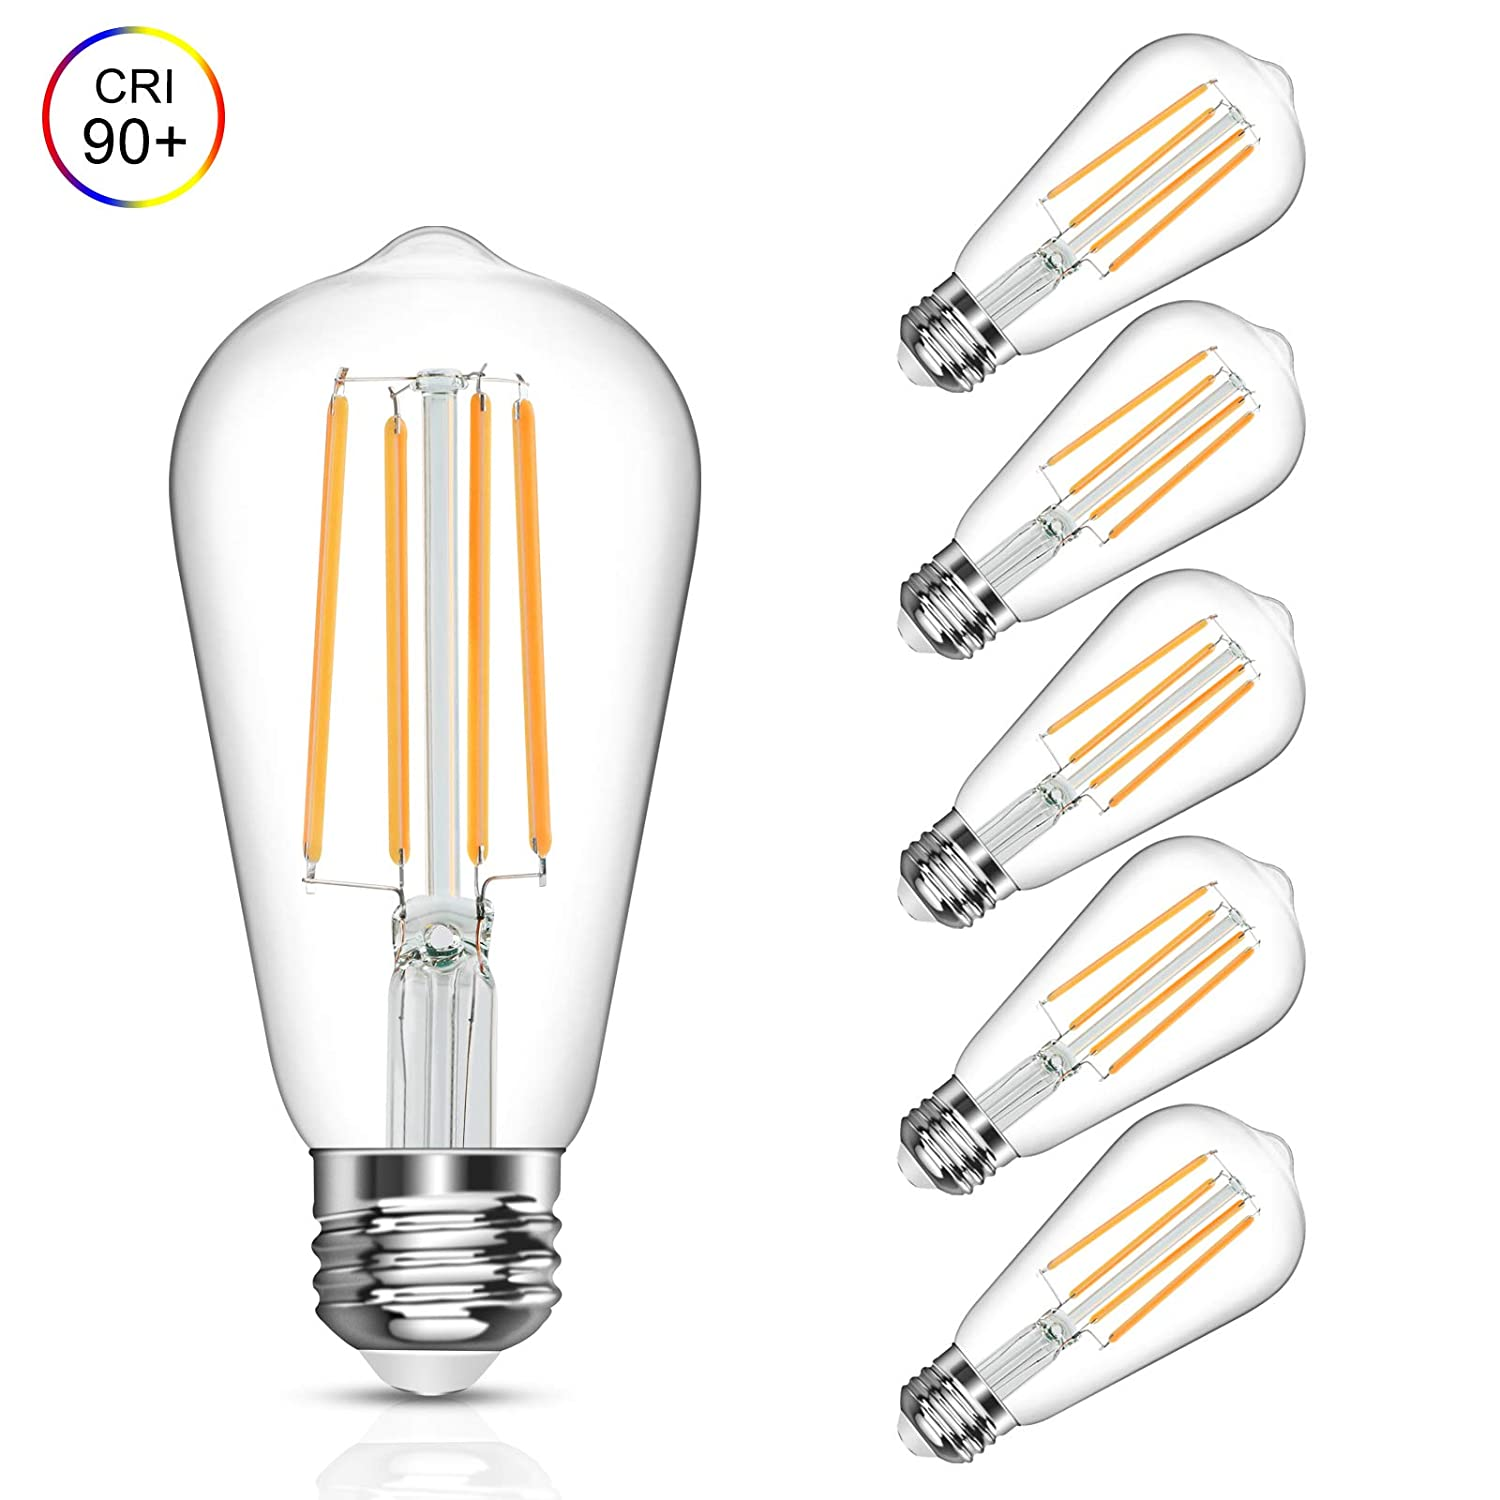 Vintage LED Edison Bulb, 6W, Equivalent 60W, Soft White 2700k, Non-Dimmable Led Filament Light Bulb, E26 Base, High CRI 90 Eye Protection Led Bulb, Clear Glass for Home Bathroom Kitchen, Pack of 5